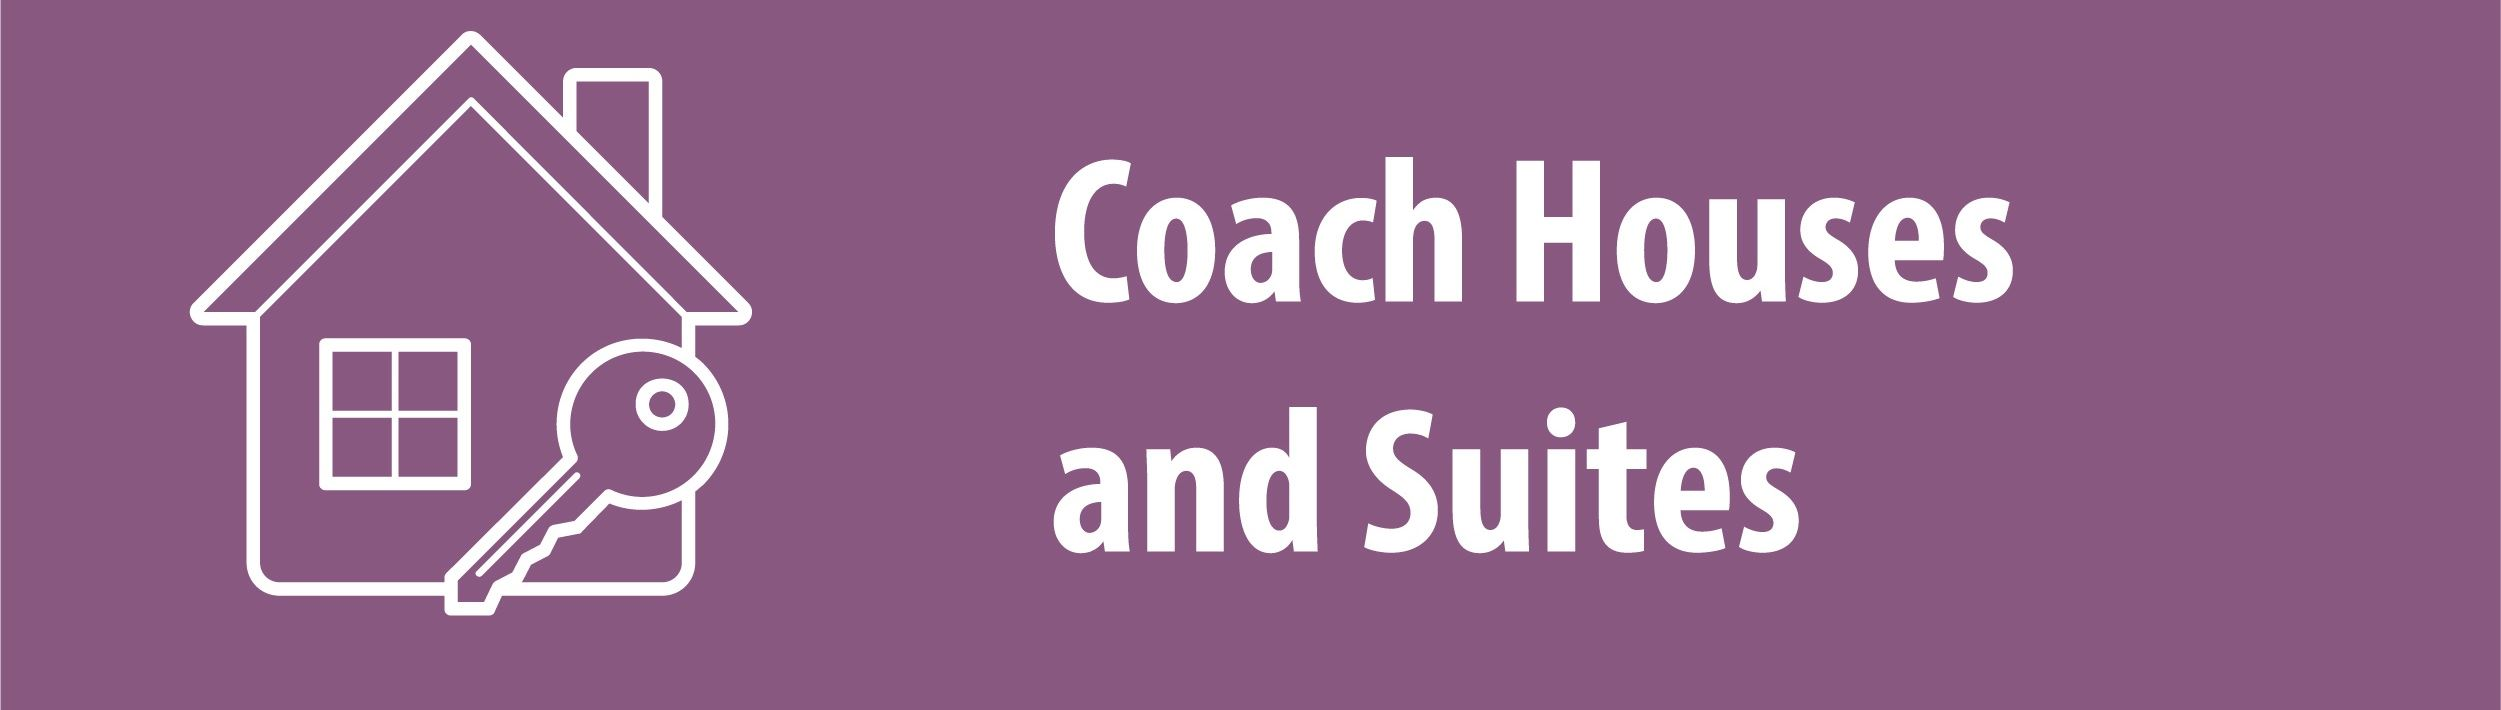 Coach Houses Banner